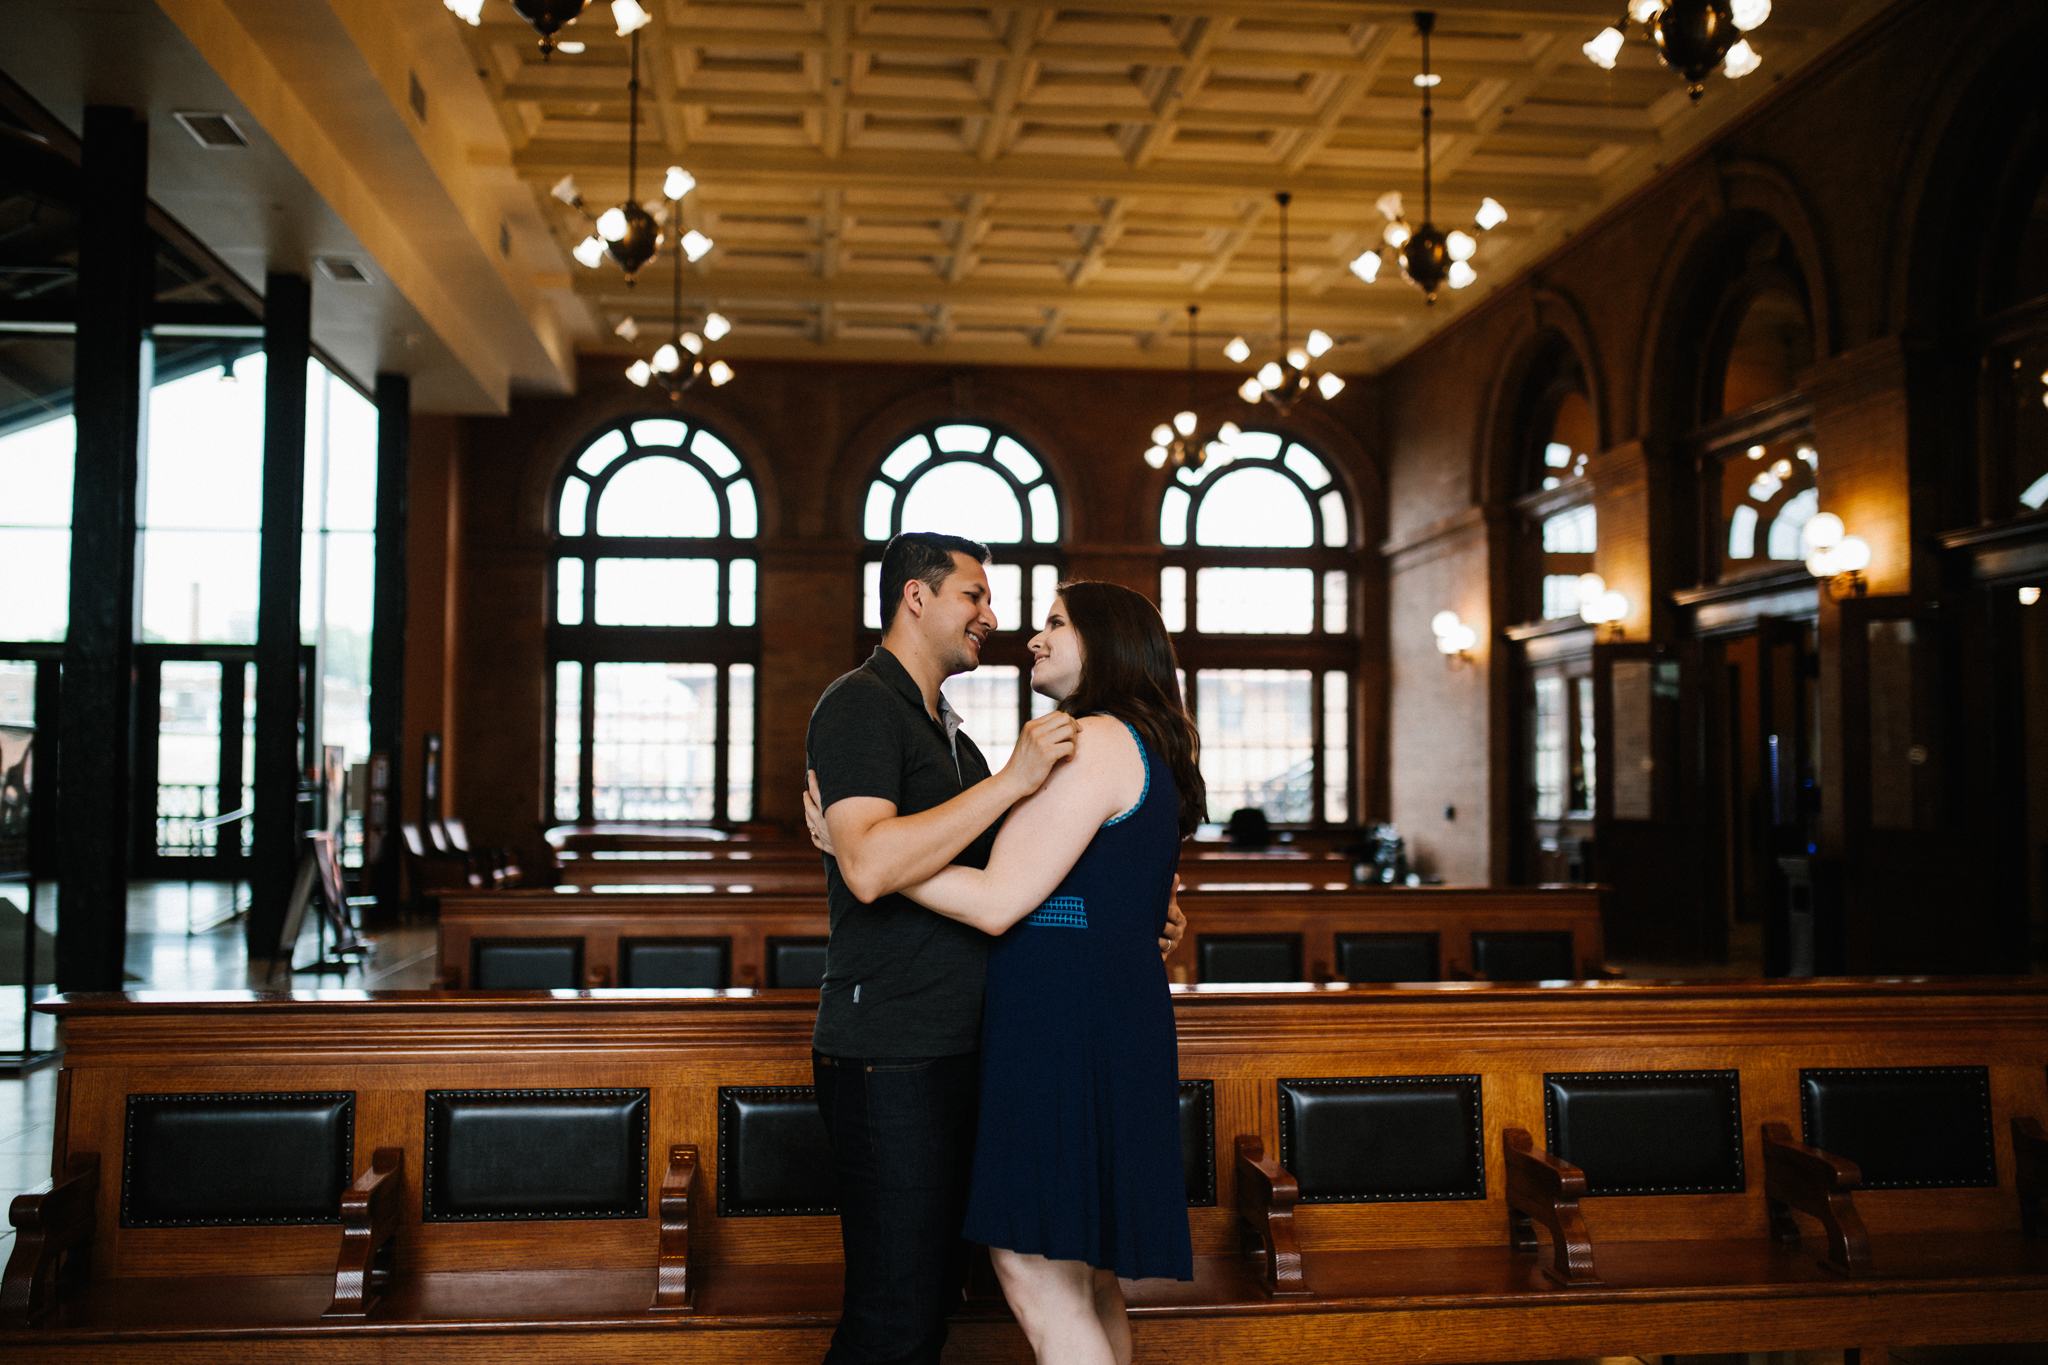 rachel_alex_richmond_engagement_session_mainstreetstation_rebeccaburtphotography-14.jpg